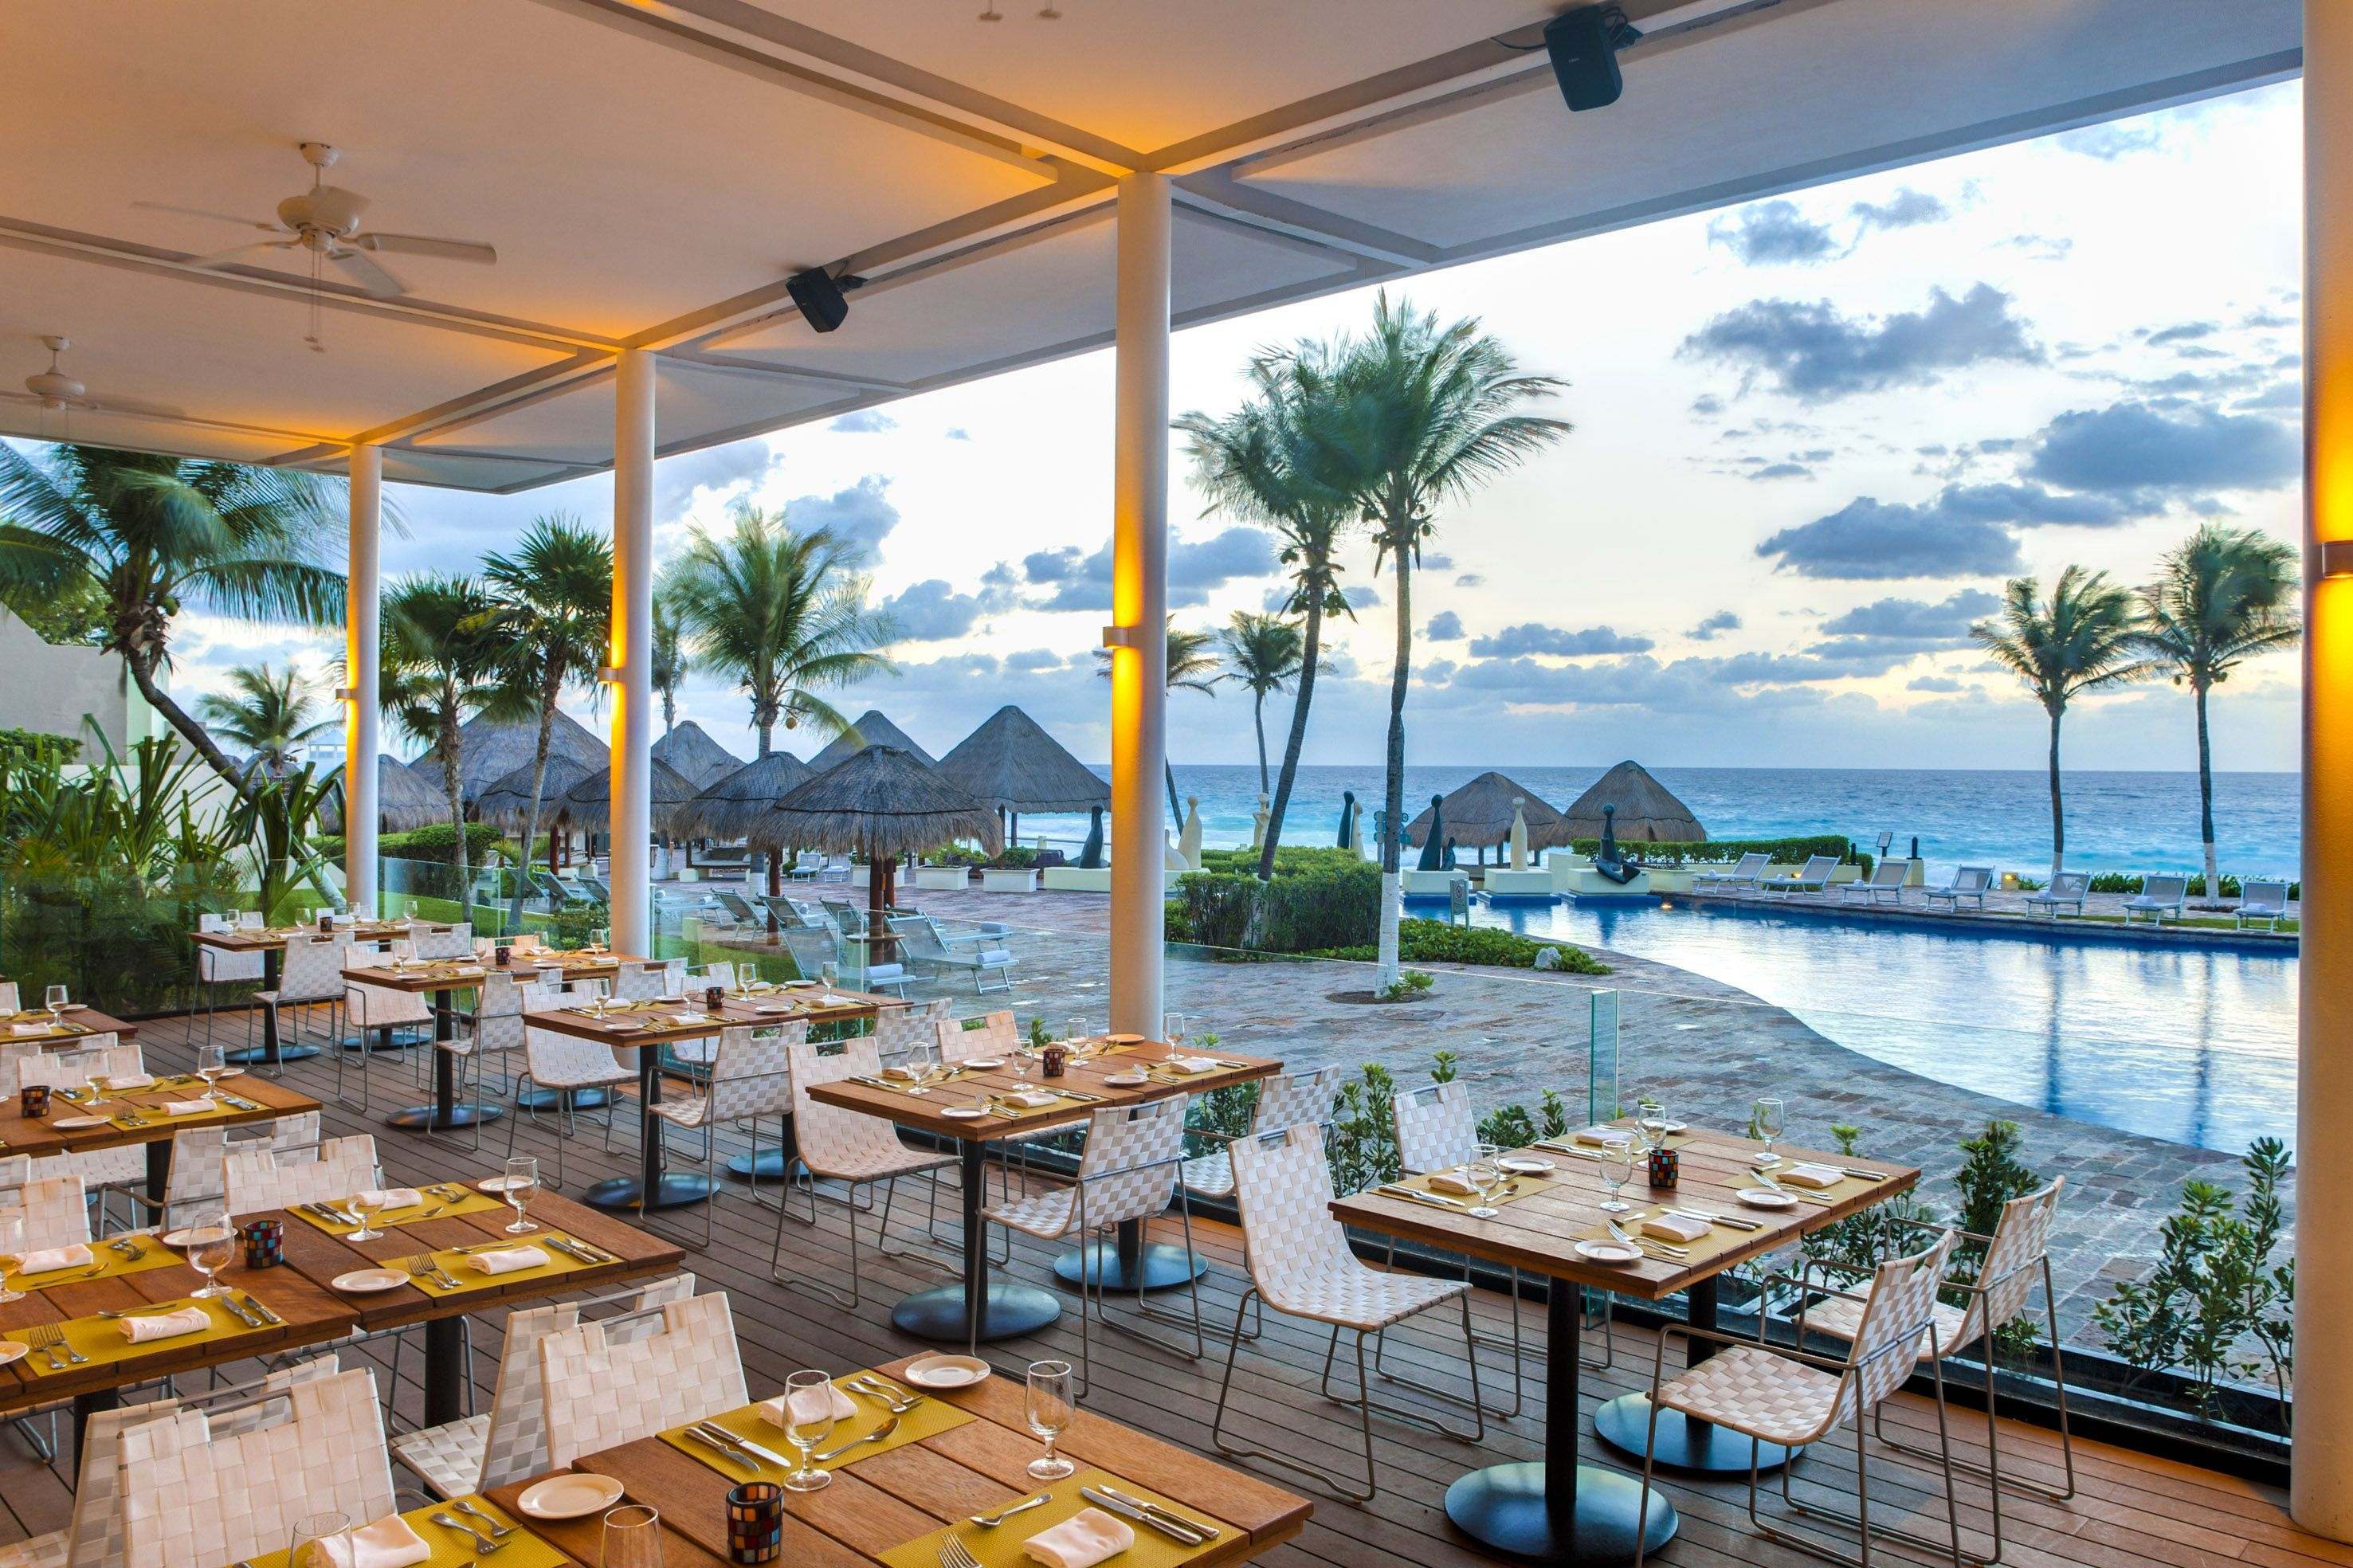 The Market Grill Restaurant At Paradisus Cancun